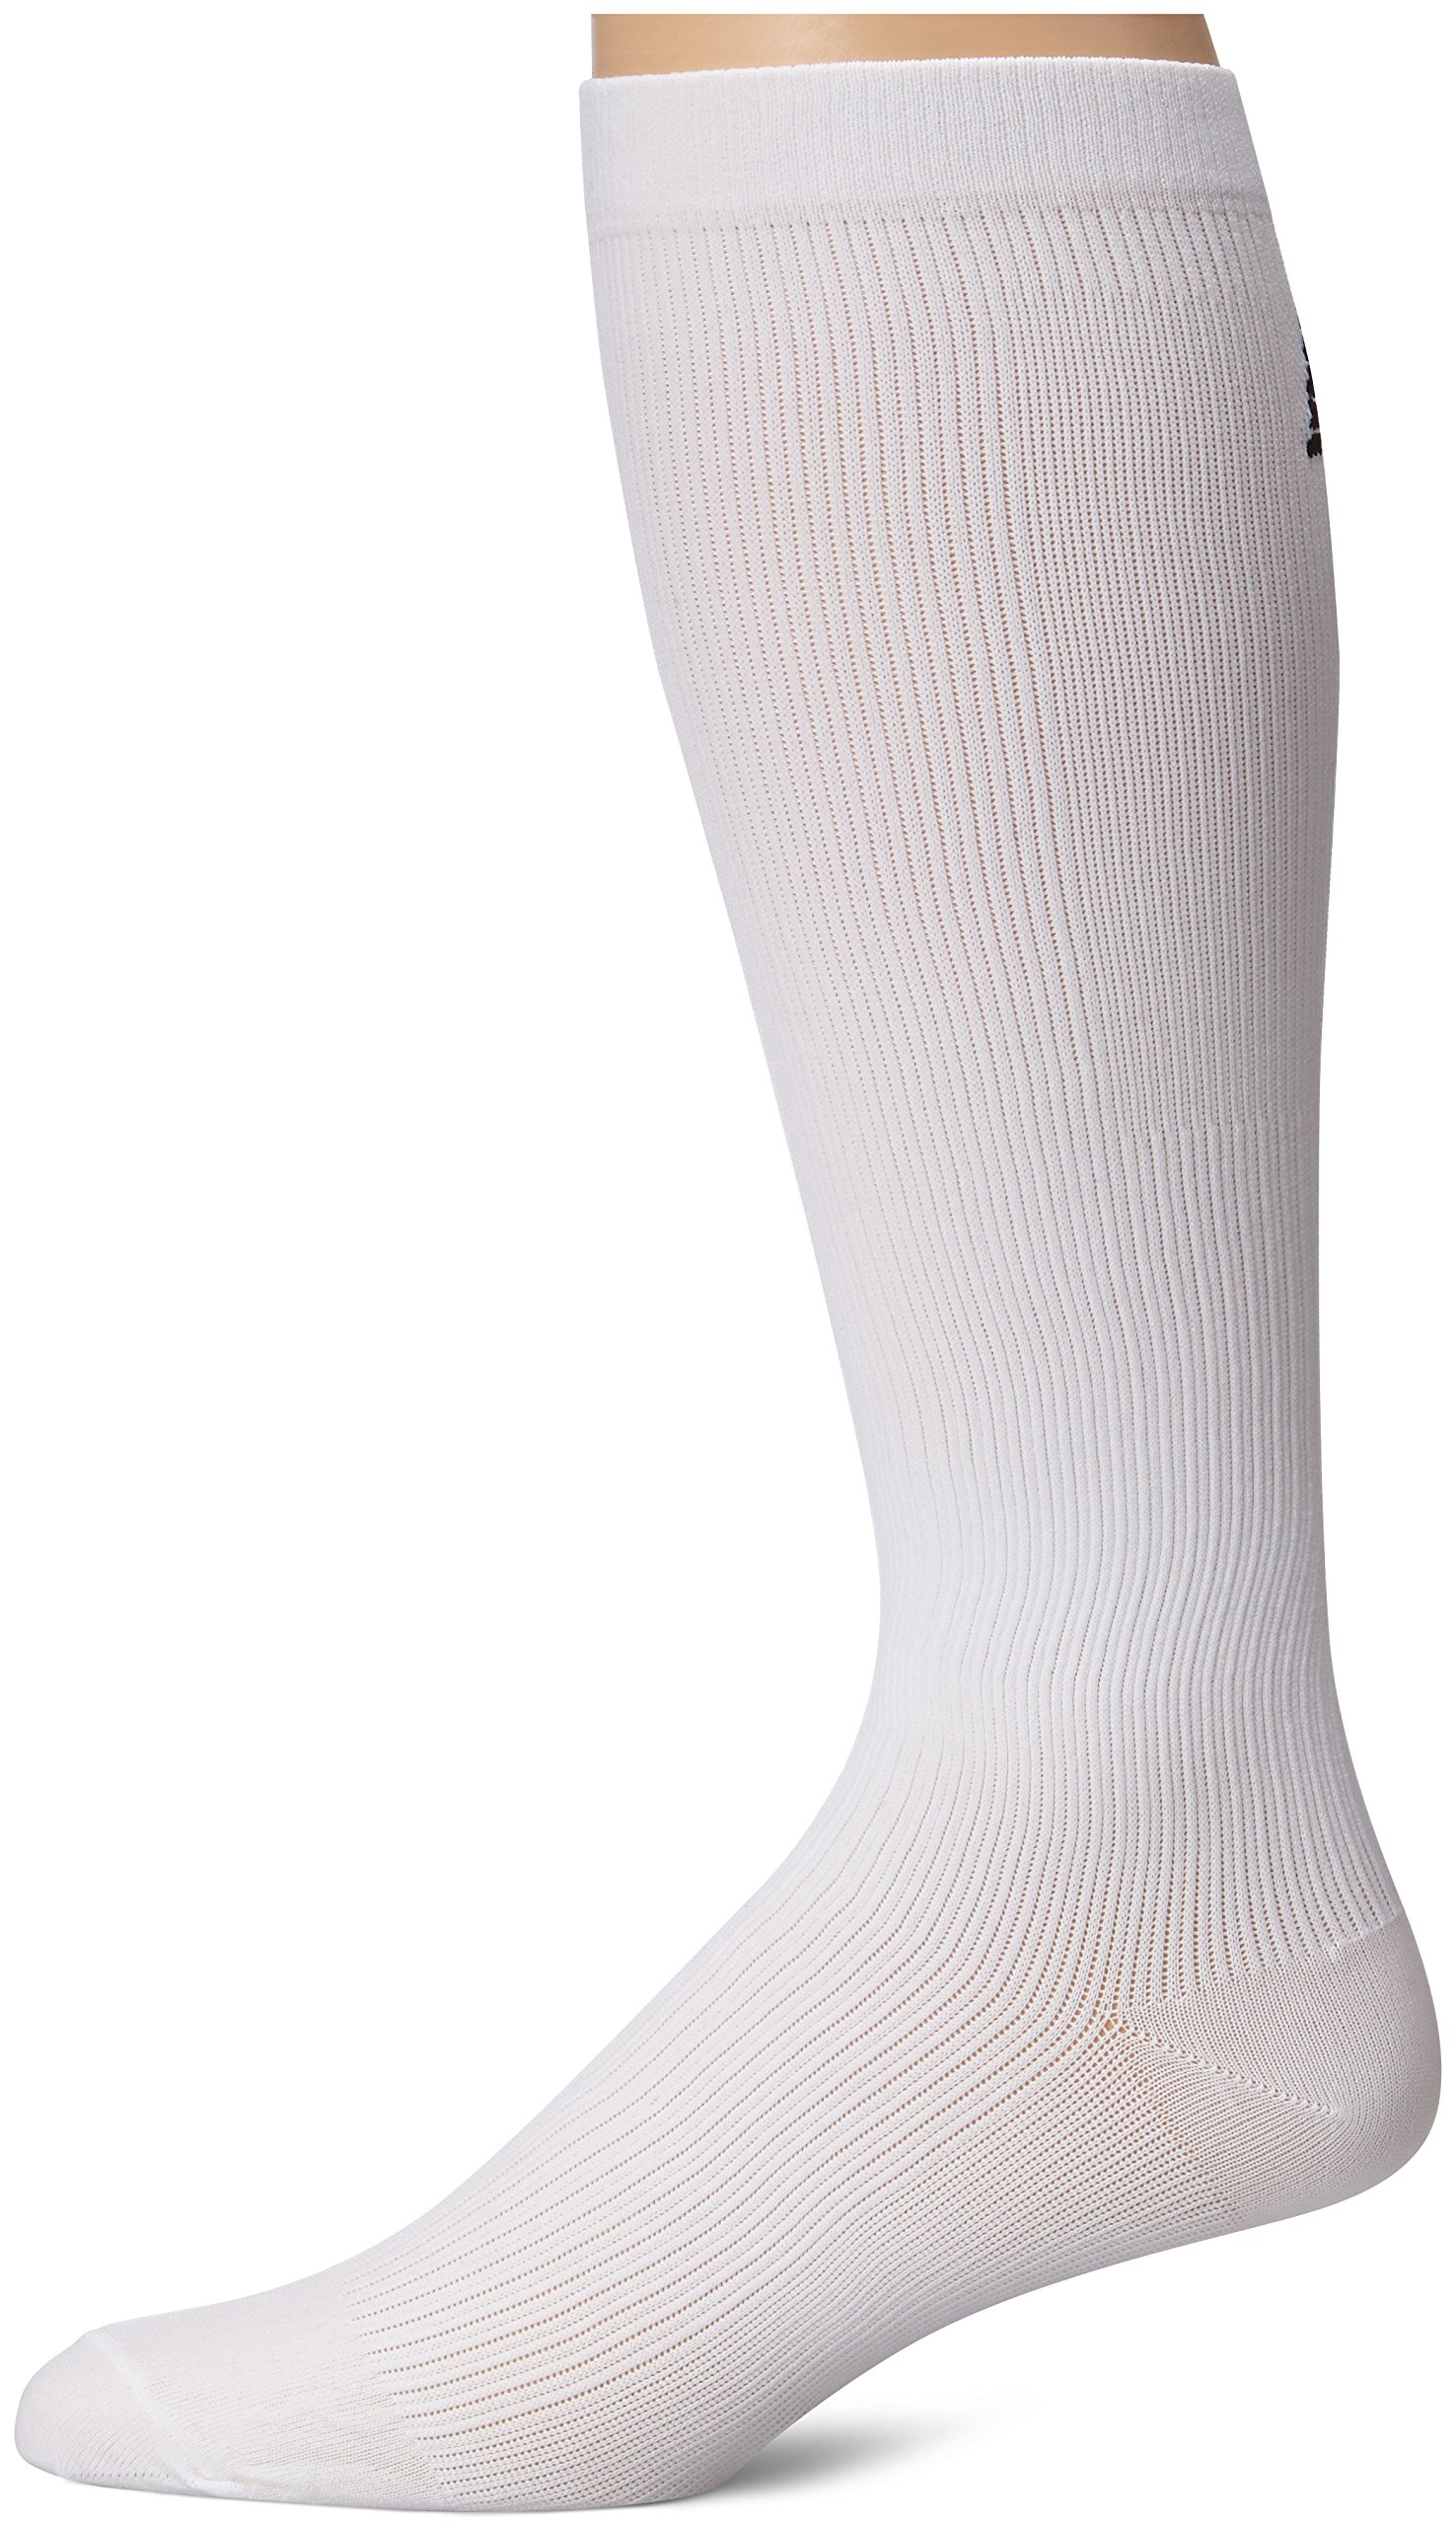 New Balance Unissex 1 Pack Wellness Compression Over the Calf Socks